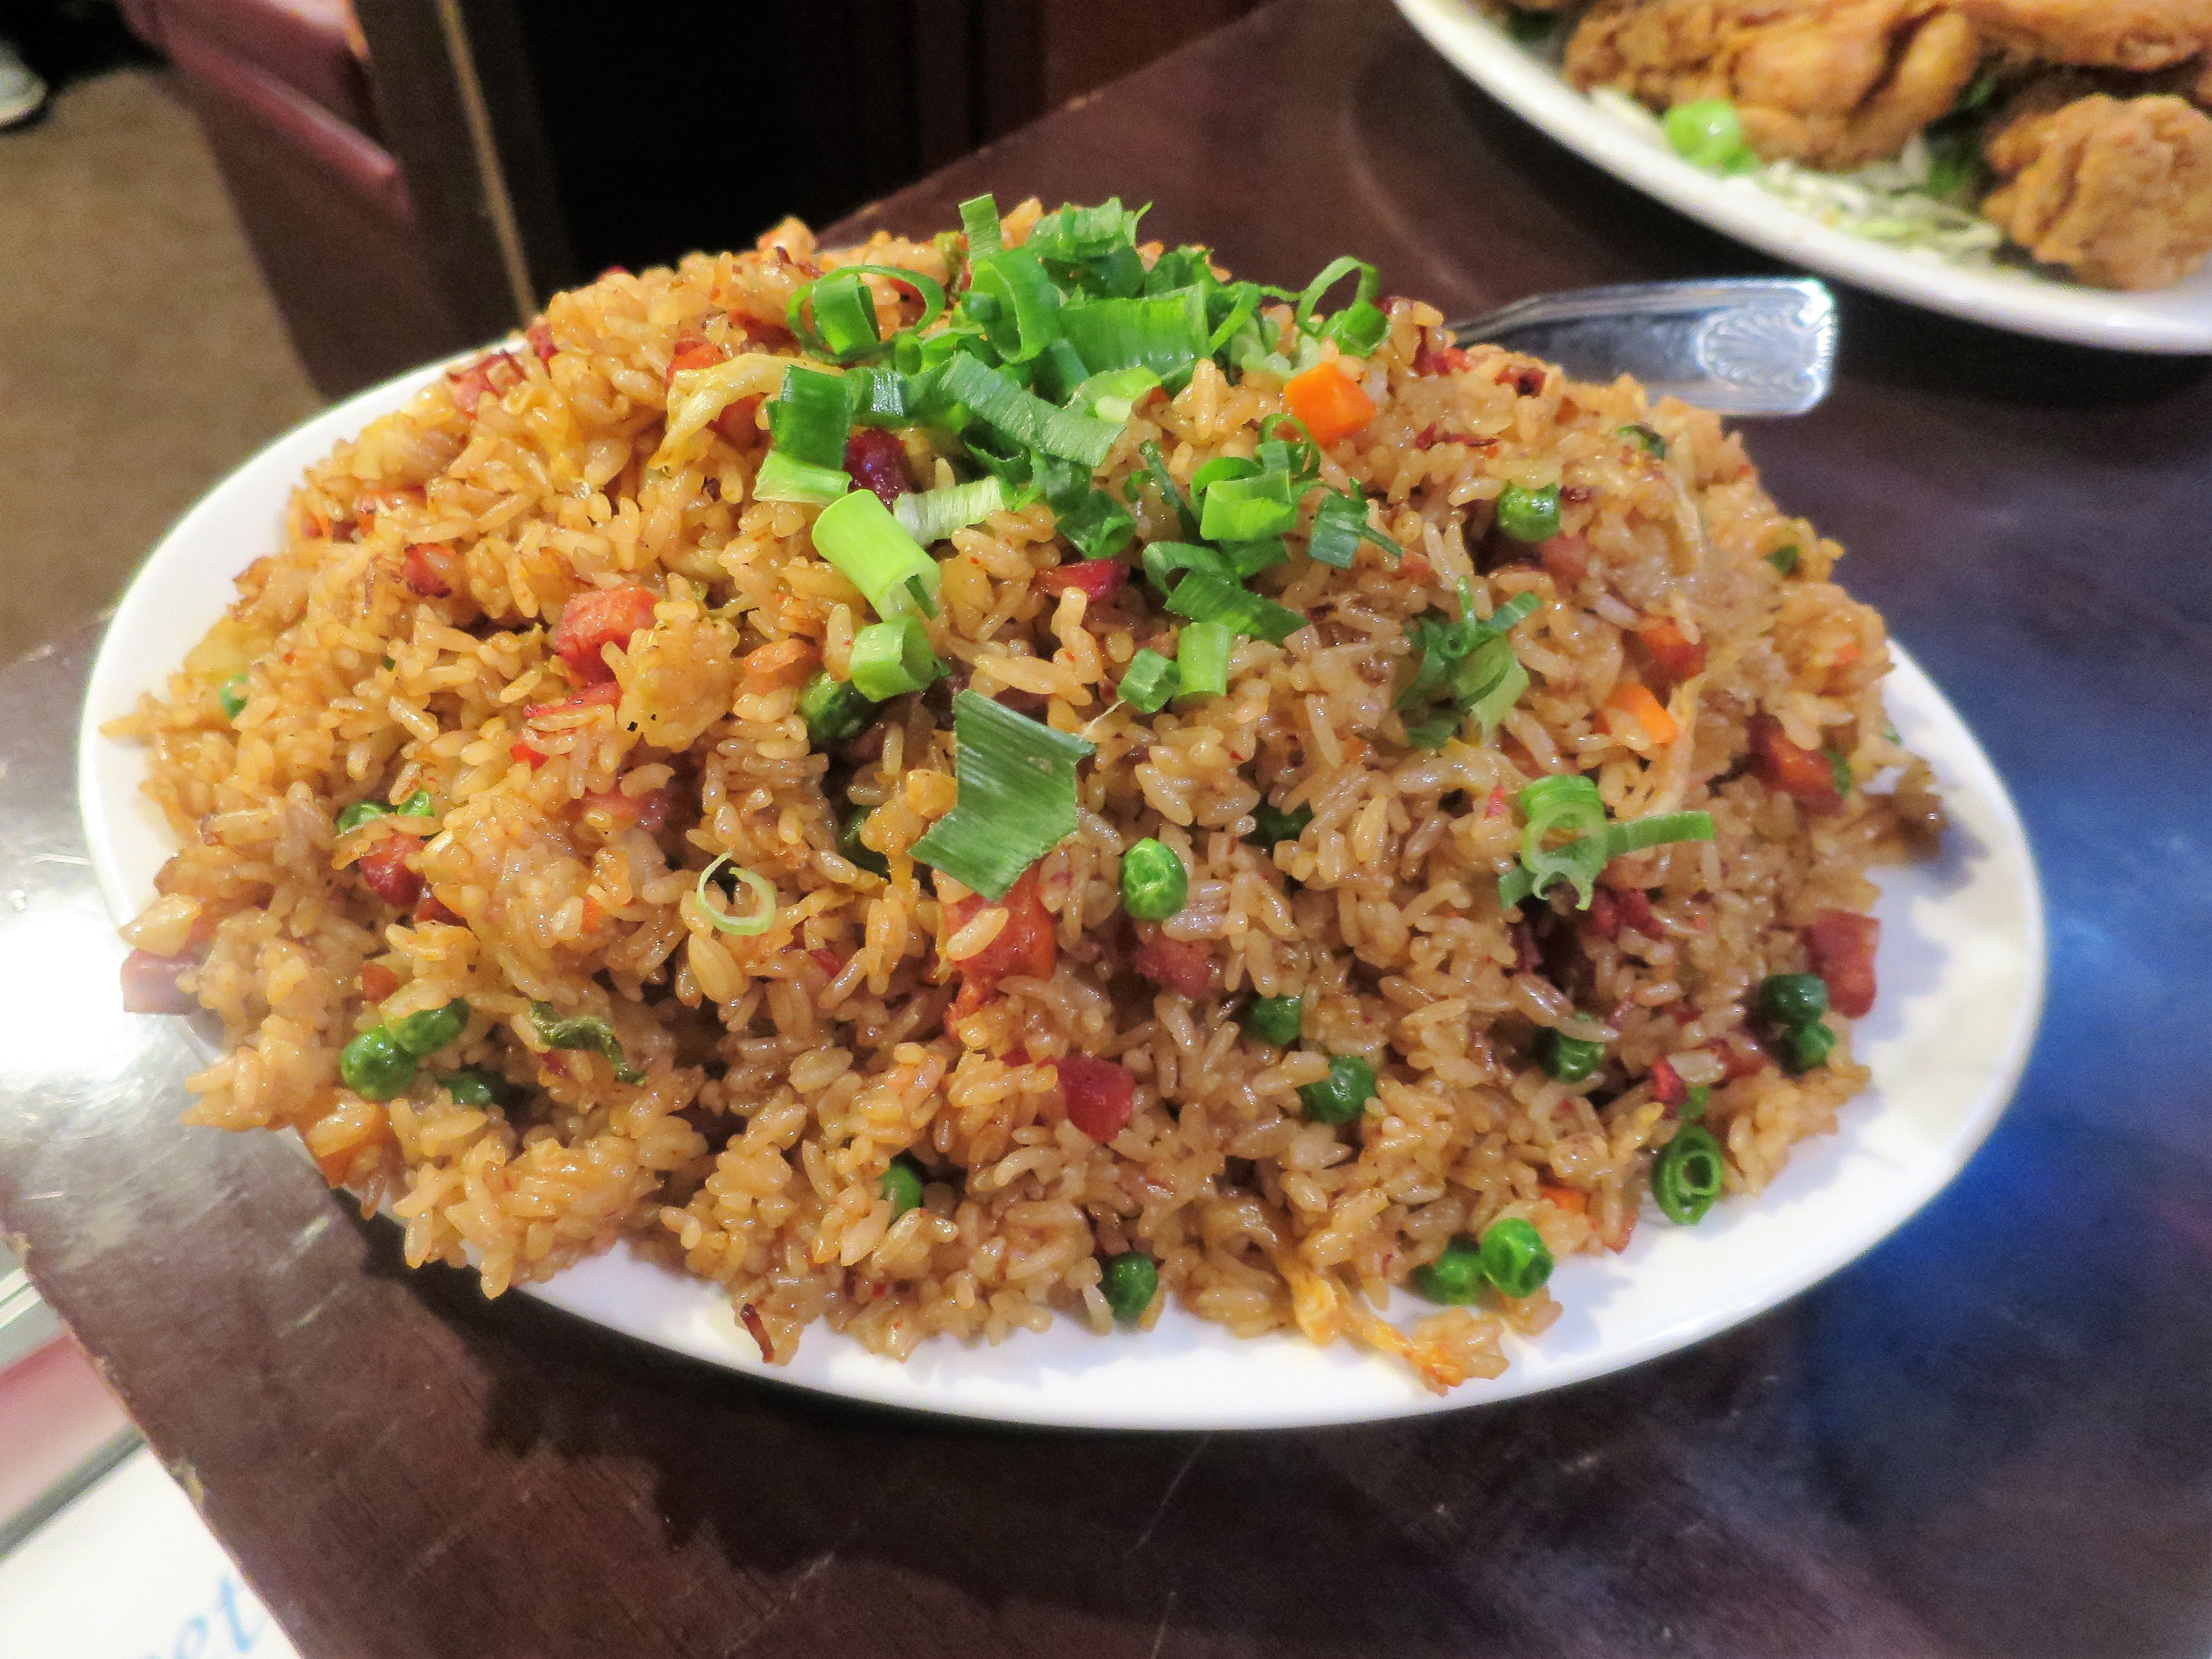 A closer look at the famous fried rice, with bacon, char siu Chinese roast pork, Portuguese sausage and Chinese sausage, plus spicy kimchee, peas, carrots and green onions.